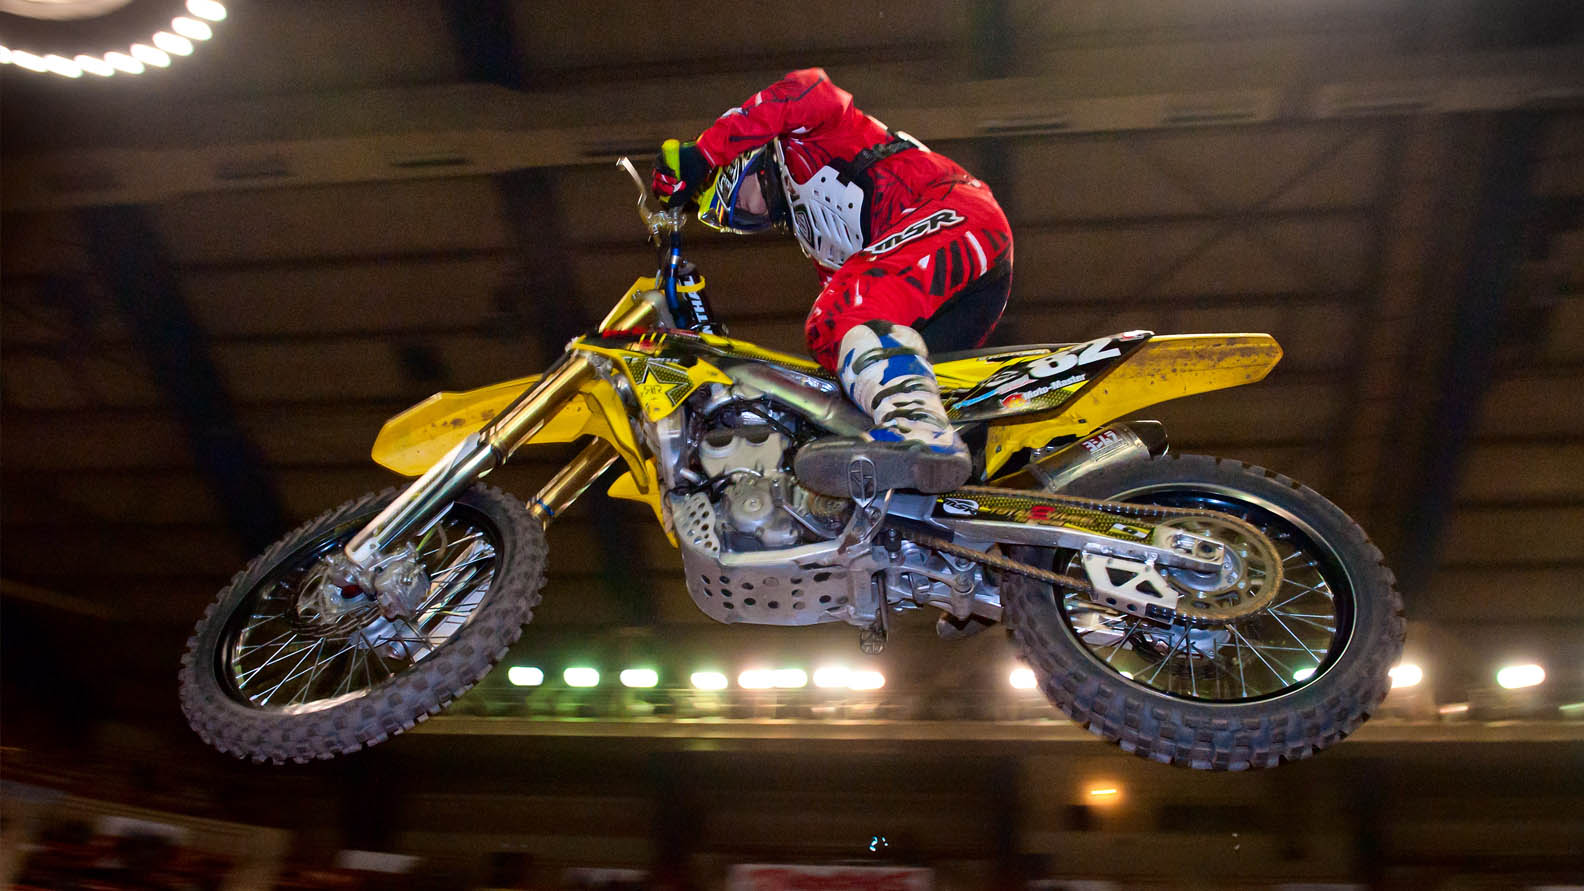 Dirt Bikes Harrisburg Pa Arenacross bike taking flight